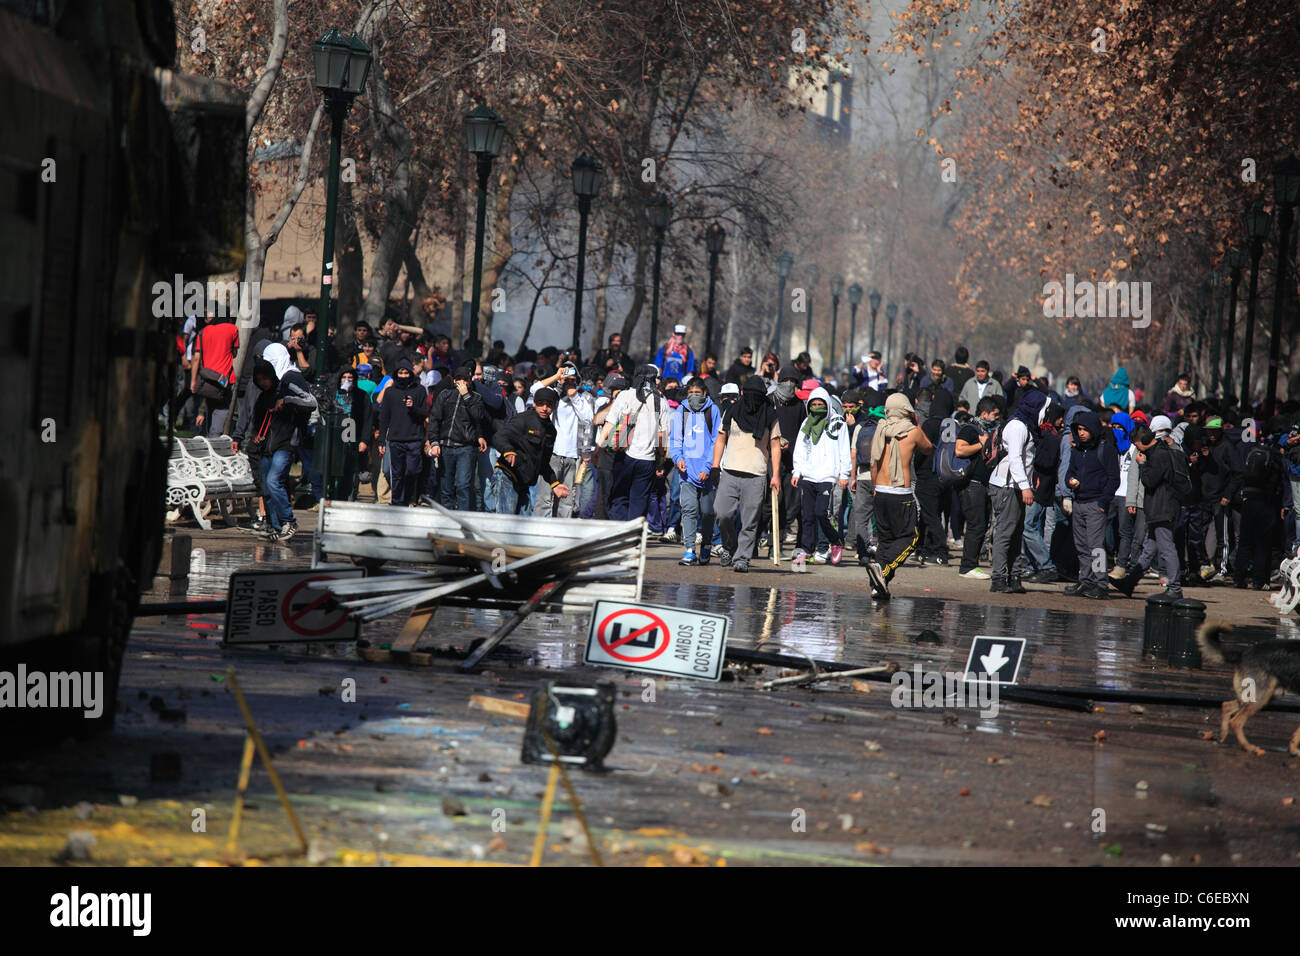 Violence during a student strike in Santiago's Downtown, Chile. - Stock Image